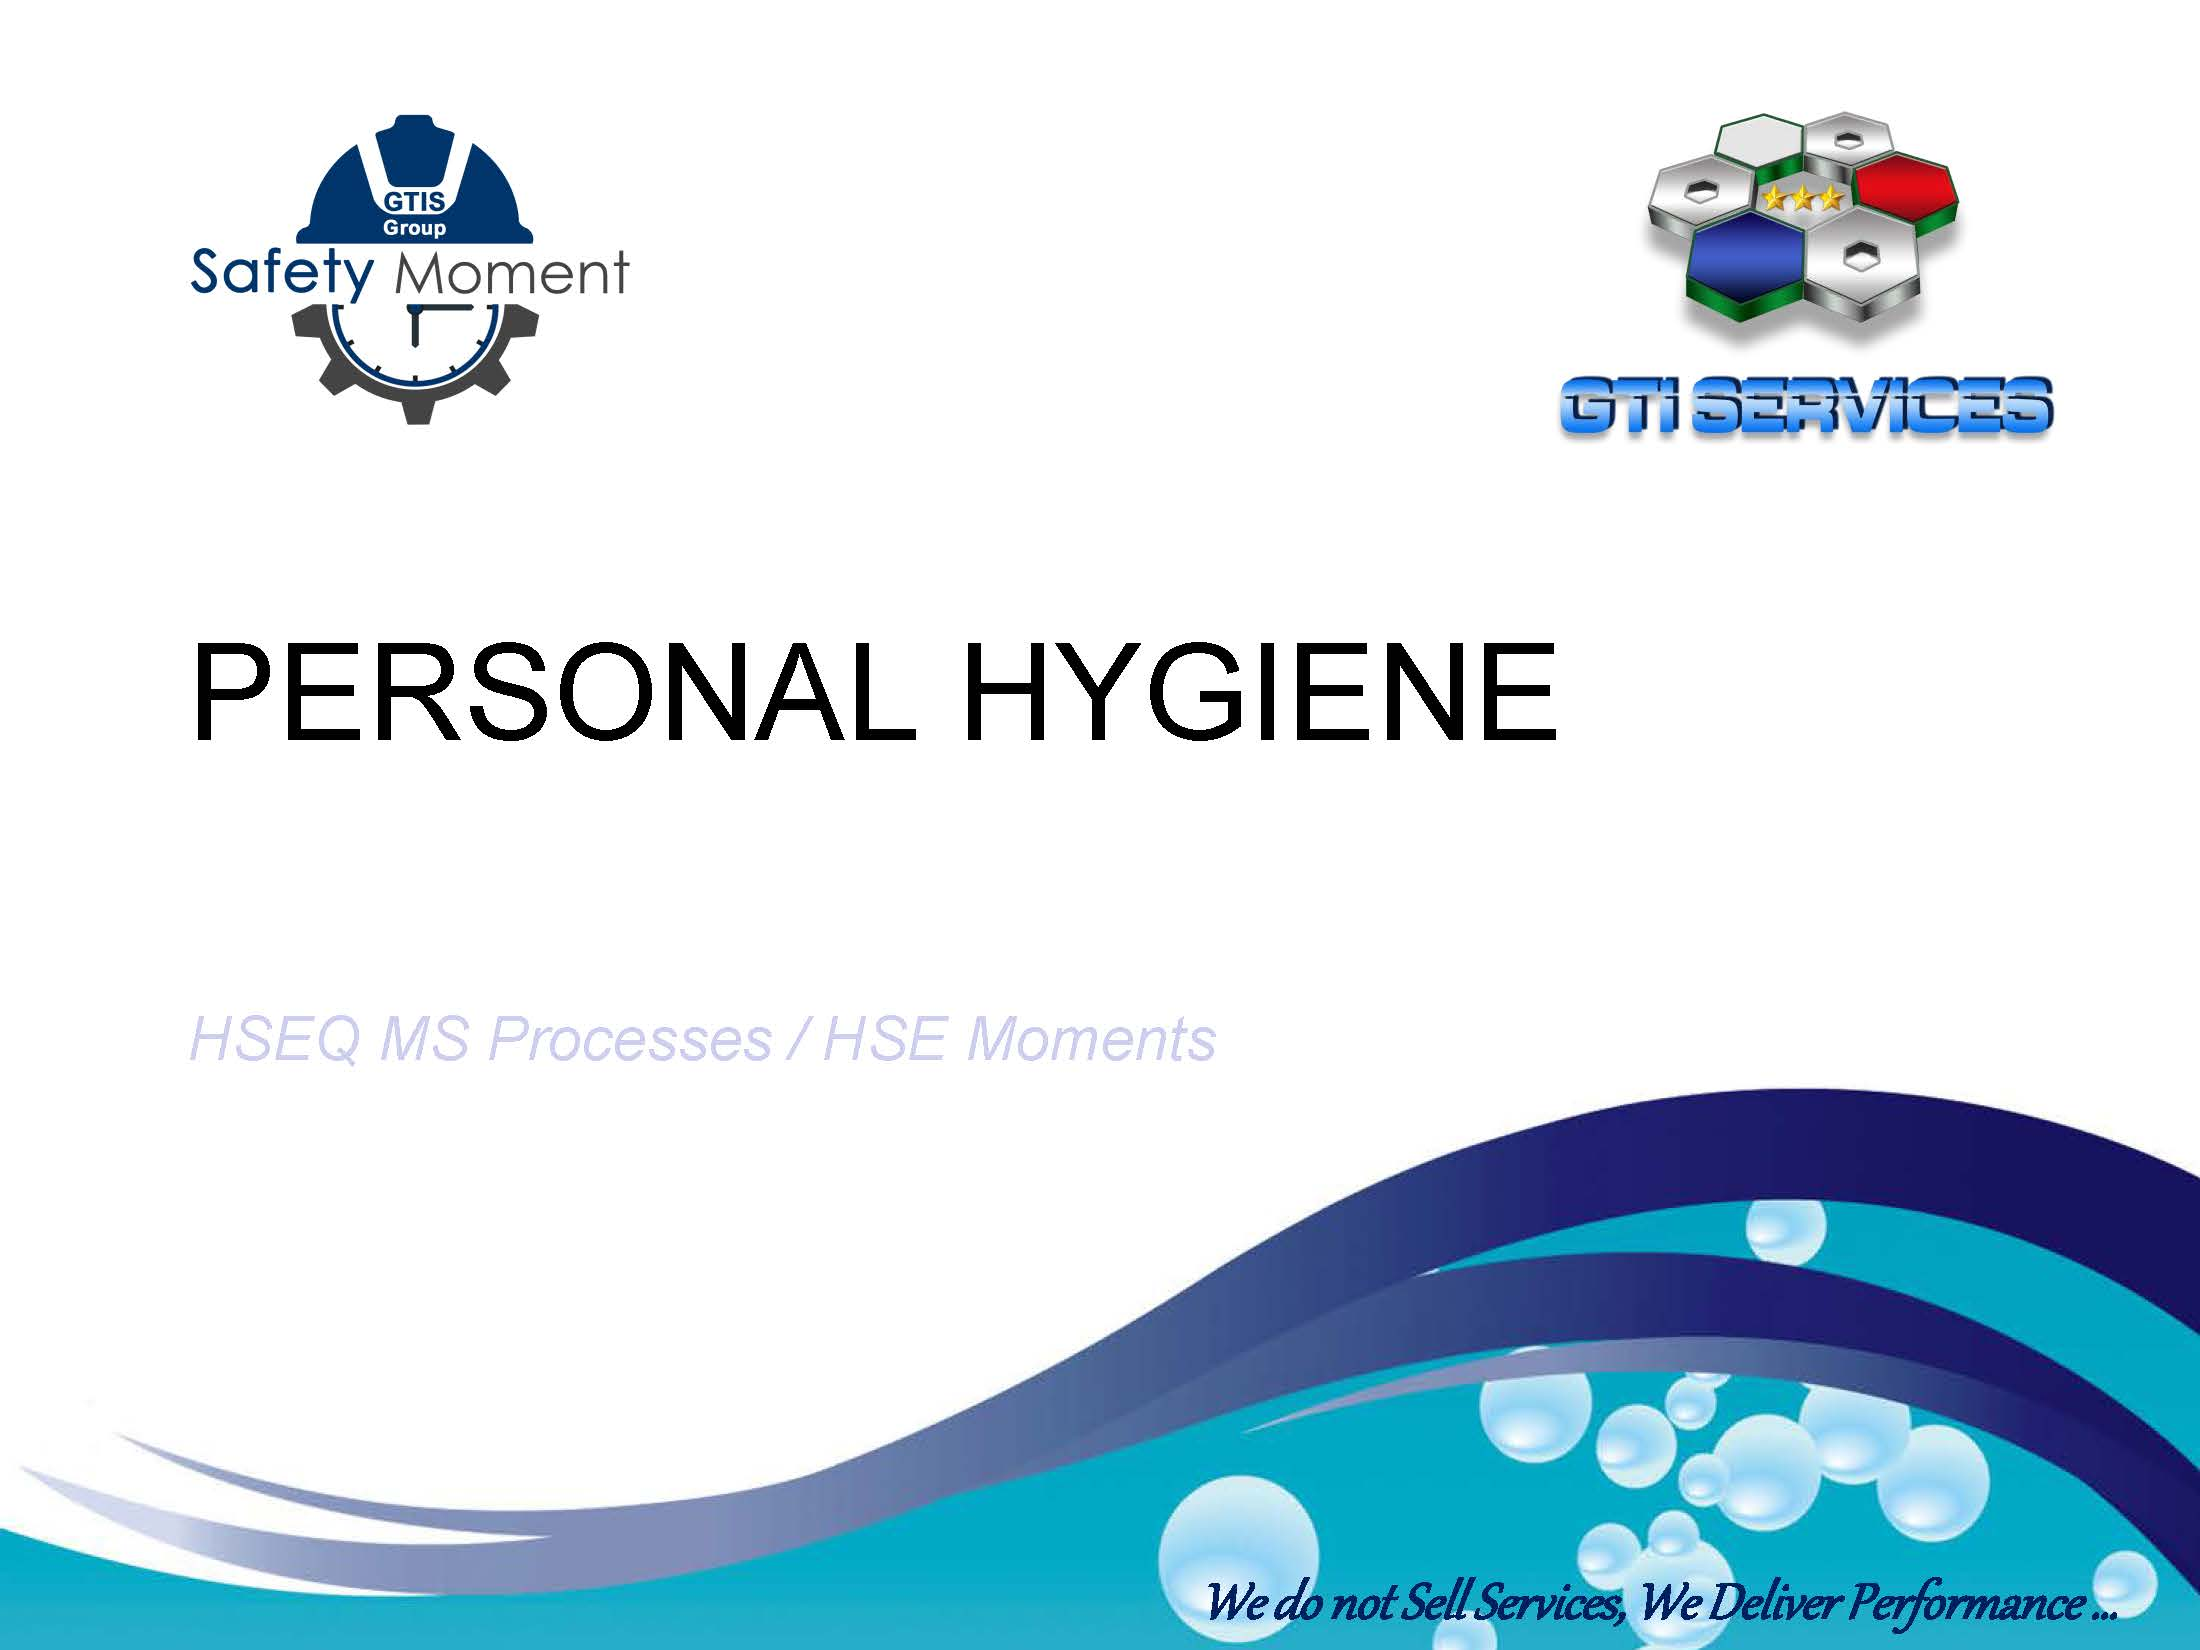 20200210 - Safety Moment - Personal Hygiene_Page_1